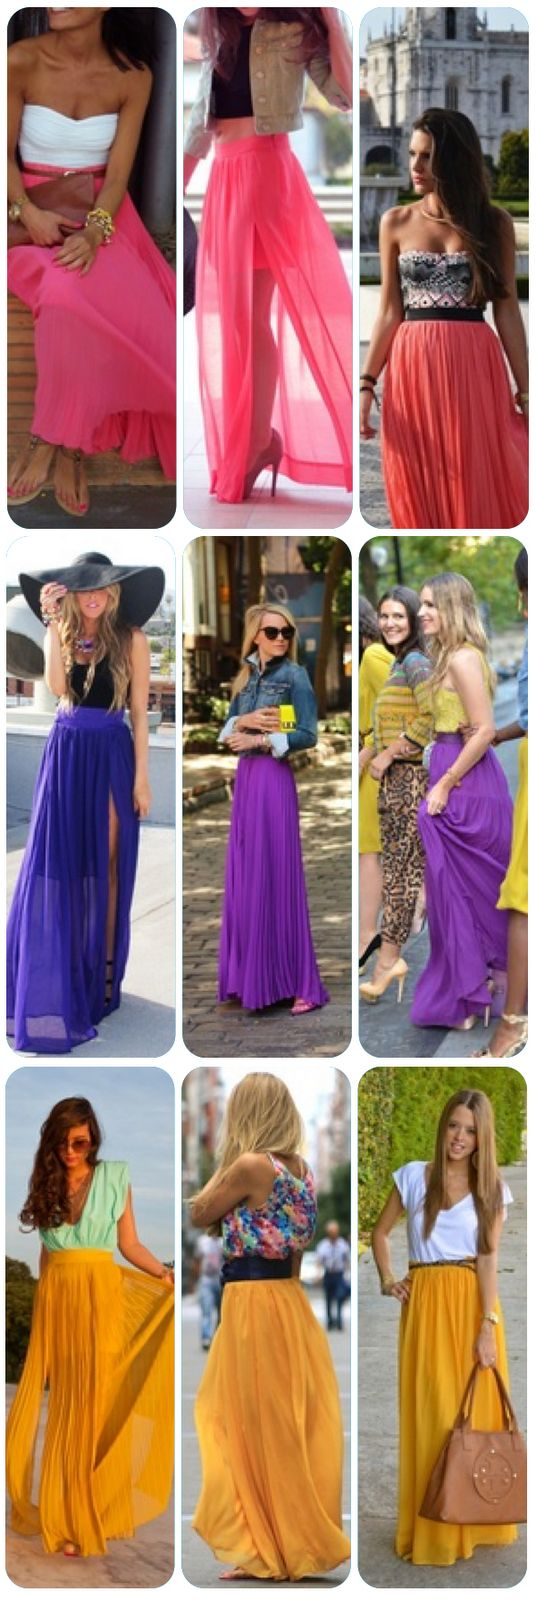 Spring / summer - street & chic style - beach look - how to combine colored maxi skirts